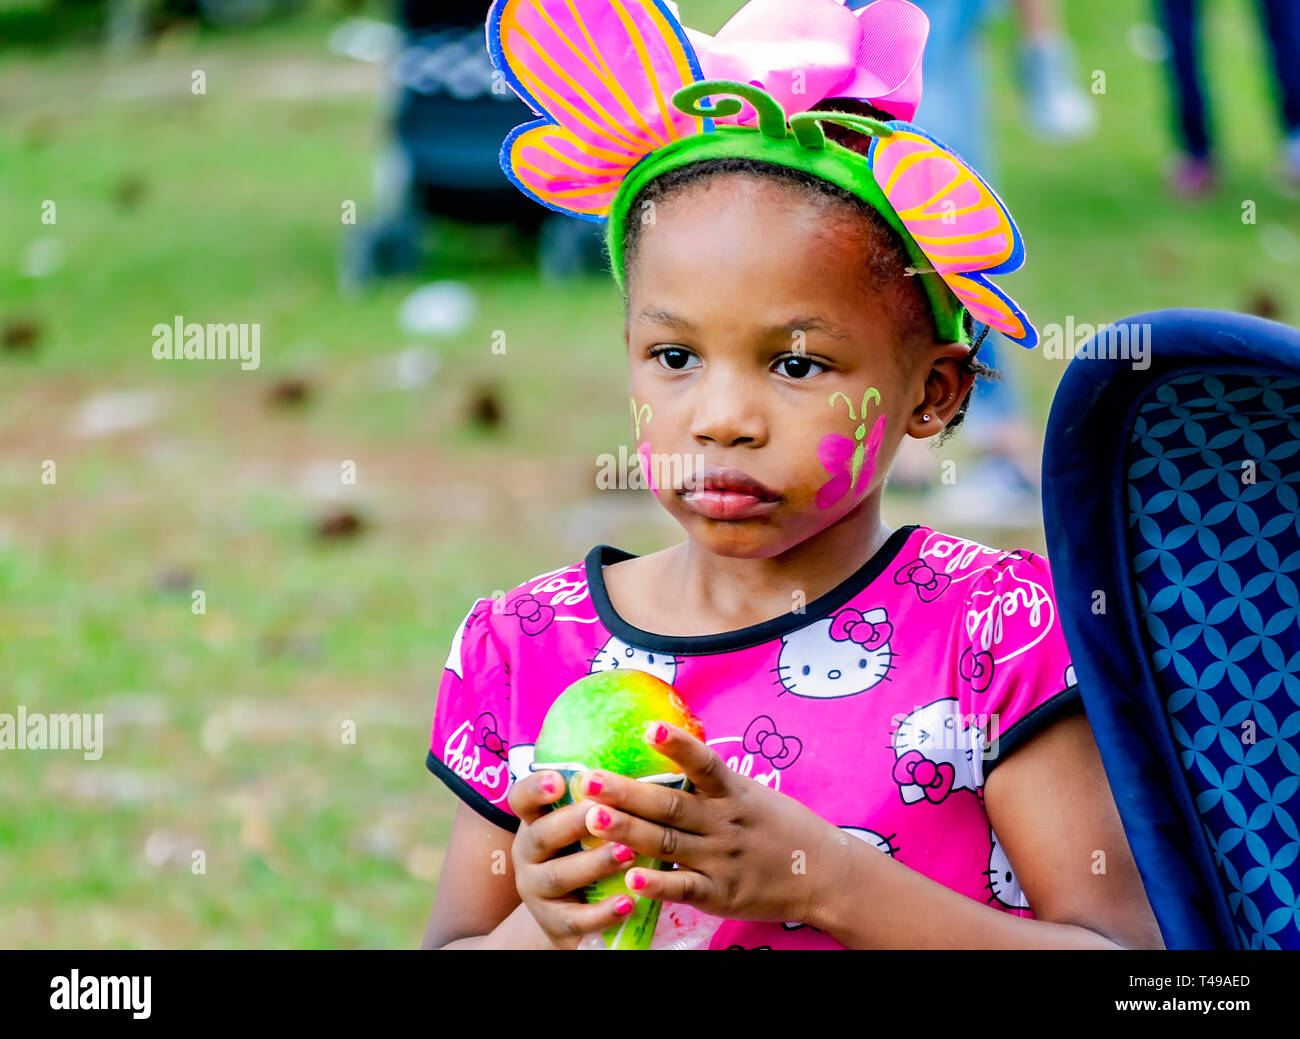 A girl in bunny ears holds a rainbow-colored sno-cone during a community Easter egg hunt at Langan Park, April 13, 2019, in Mobile, Alabama. - Stock Image